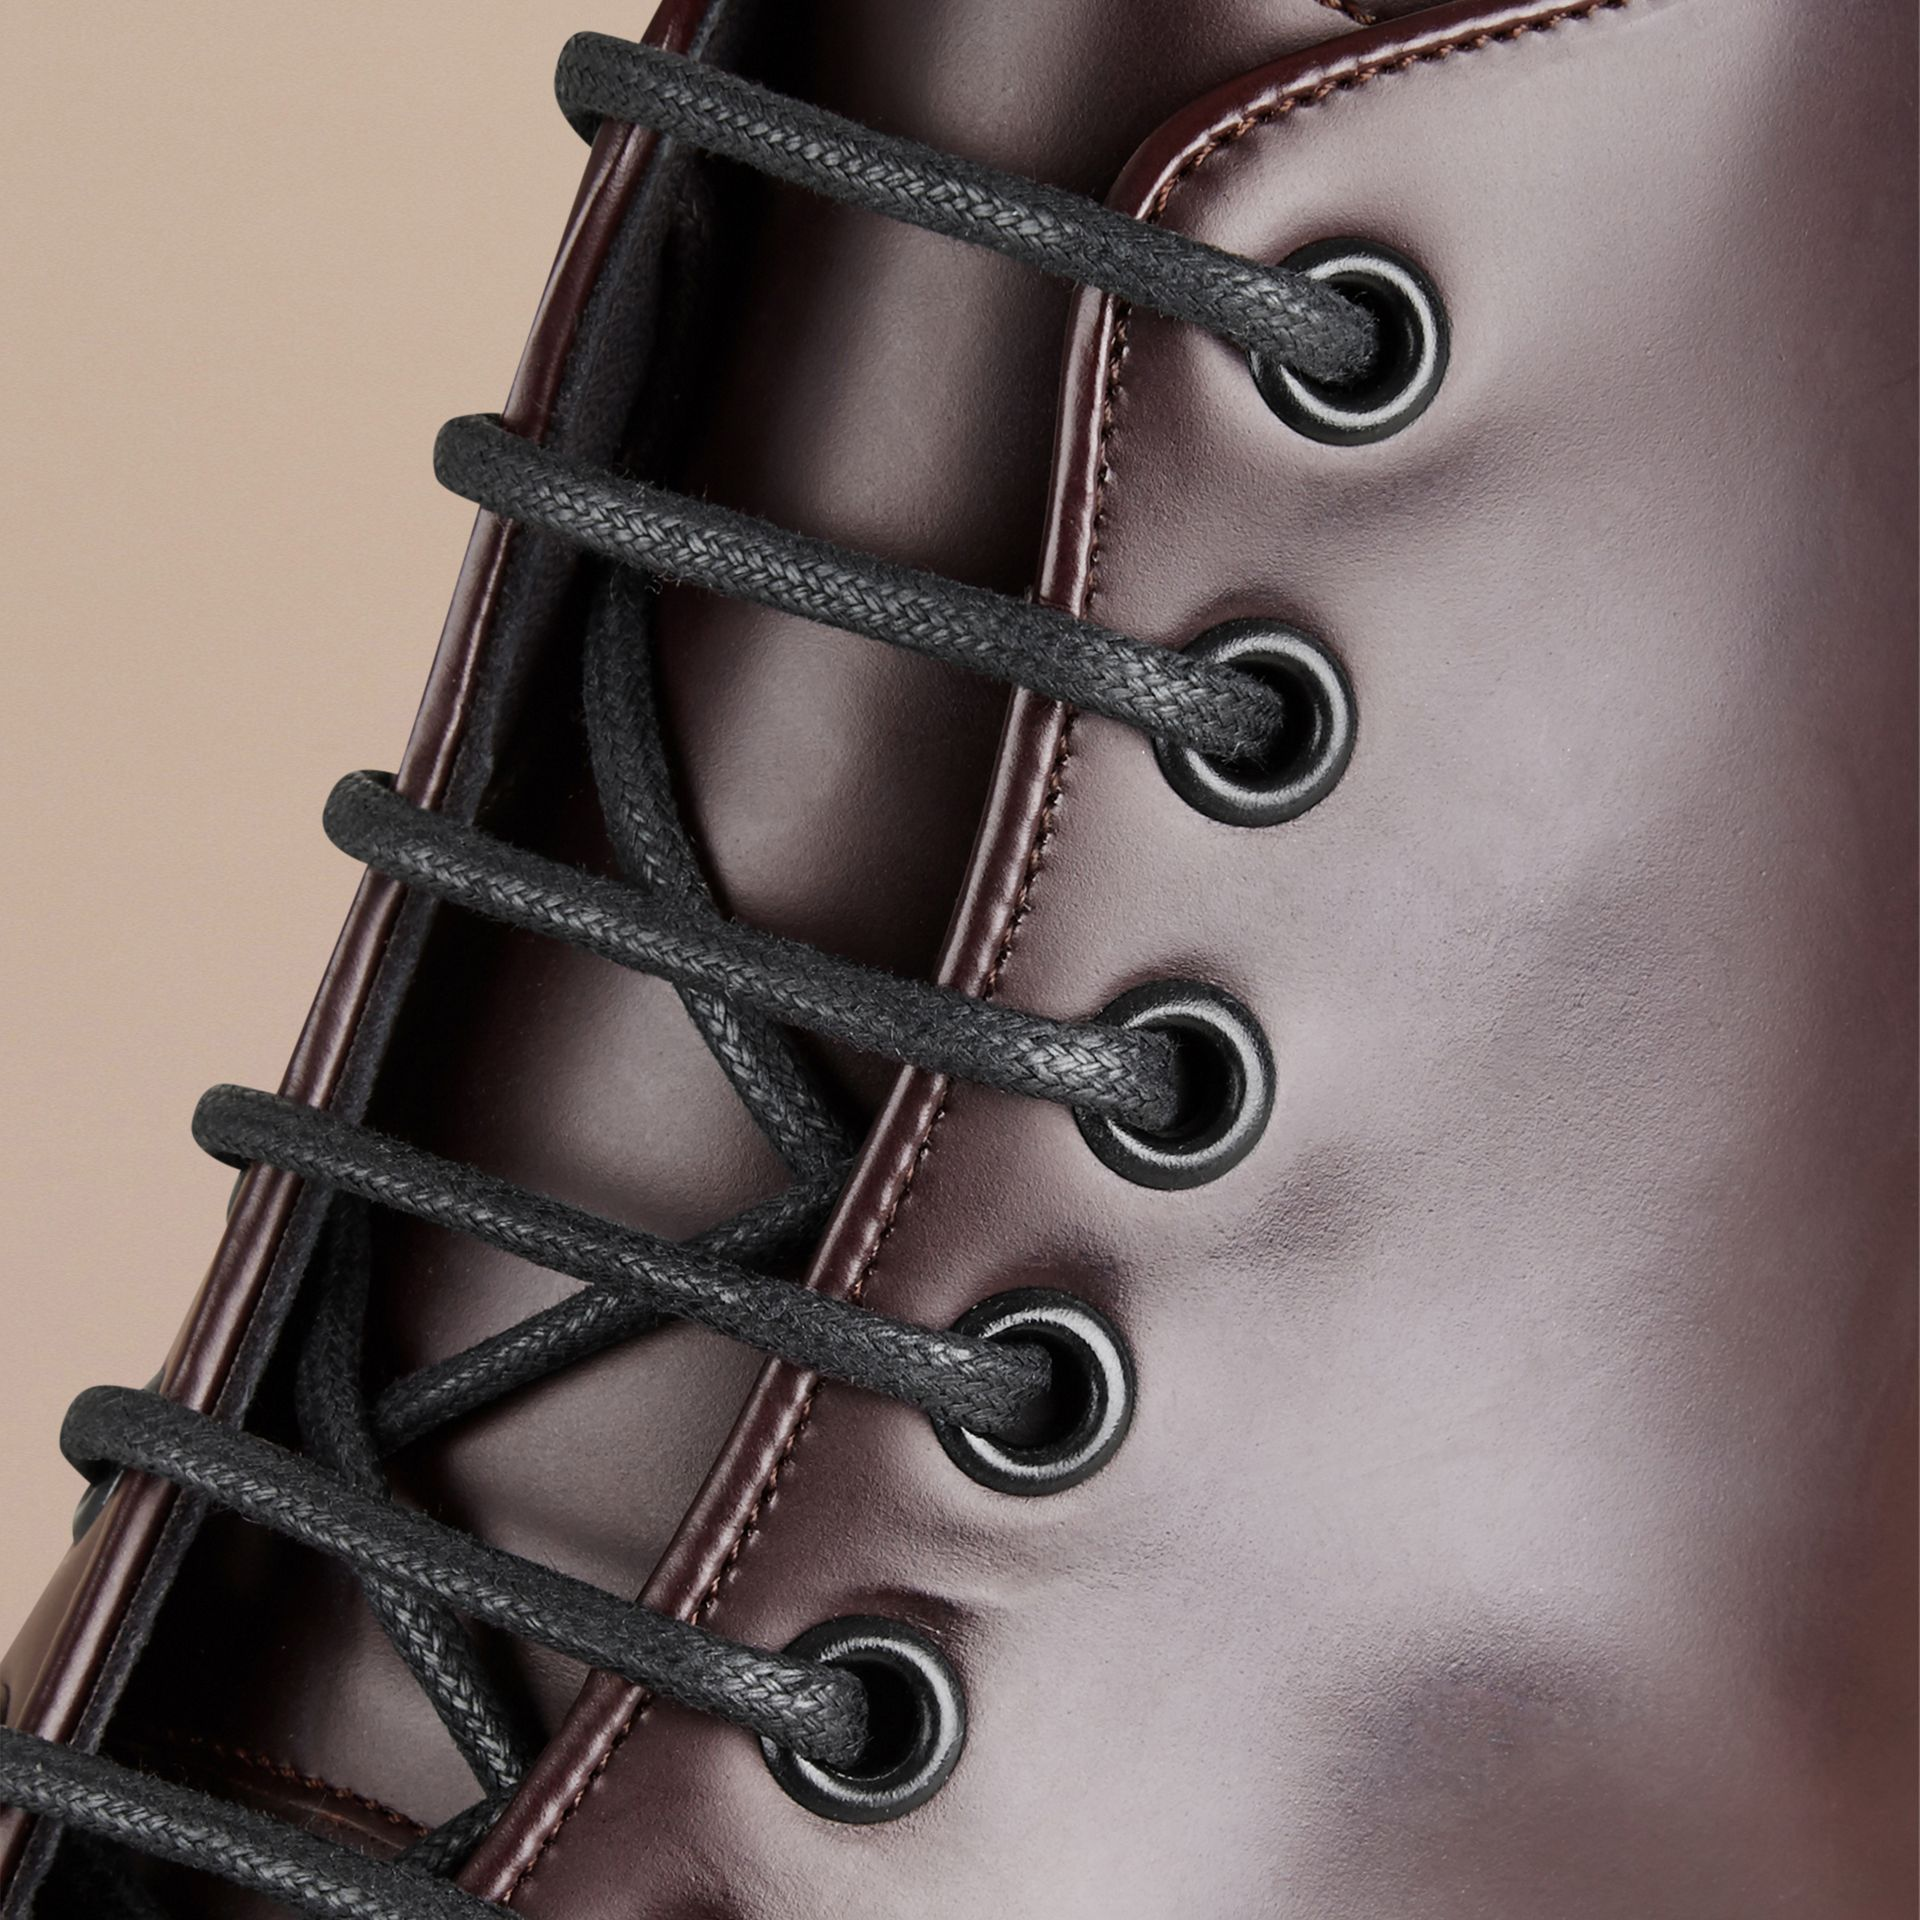 Oxblood Lace-up Leather Boots Oxblood - gallery image 2